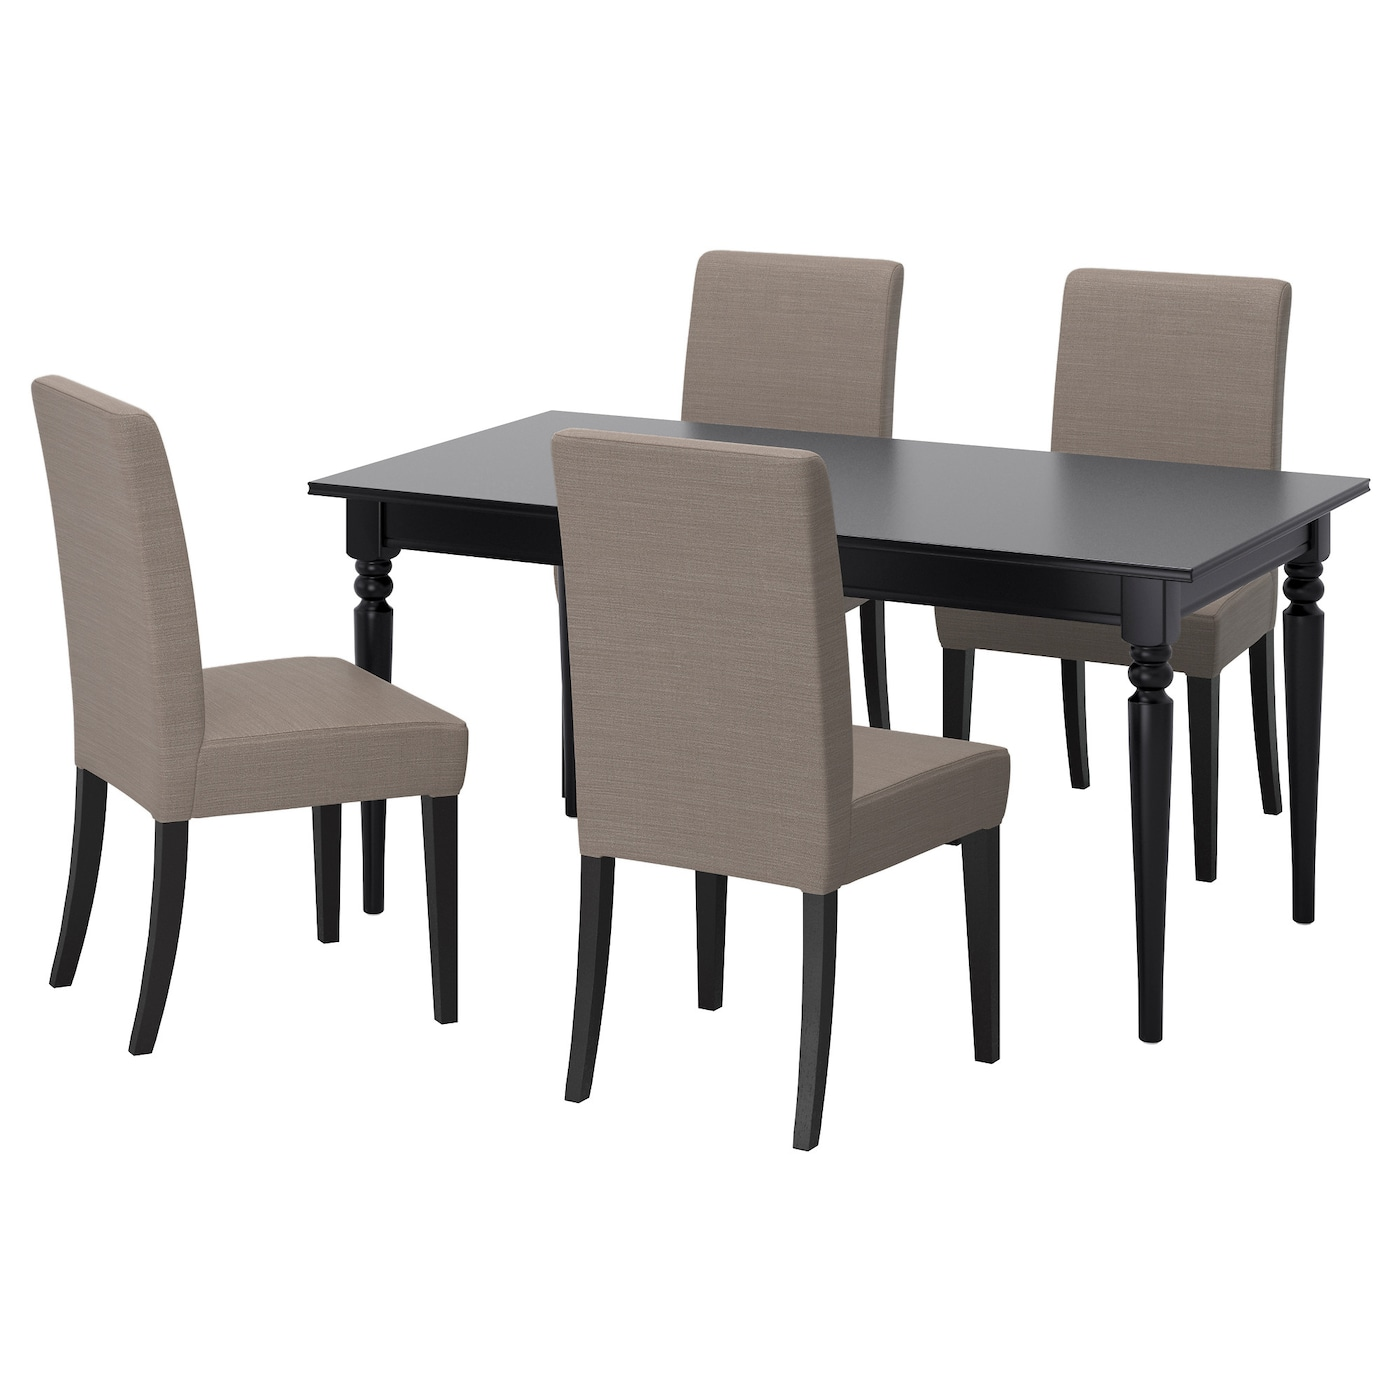 INGATORP HENRIKSDAL Table And 4 Chairs Black Nolhaga Grey Beige 155 Cm IKEA